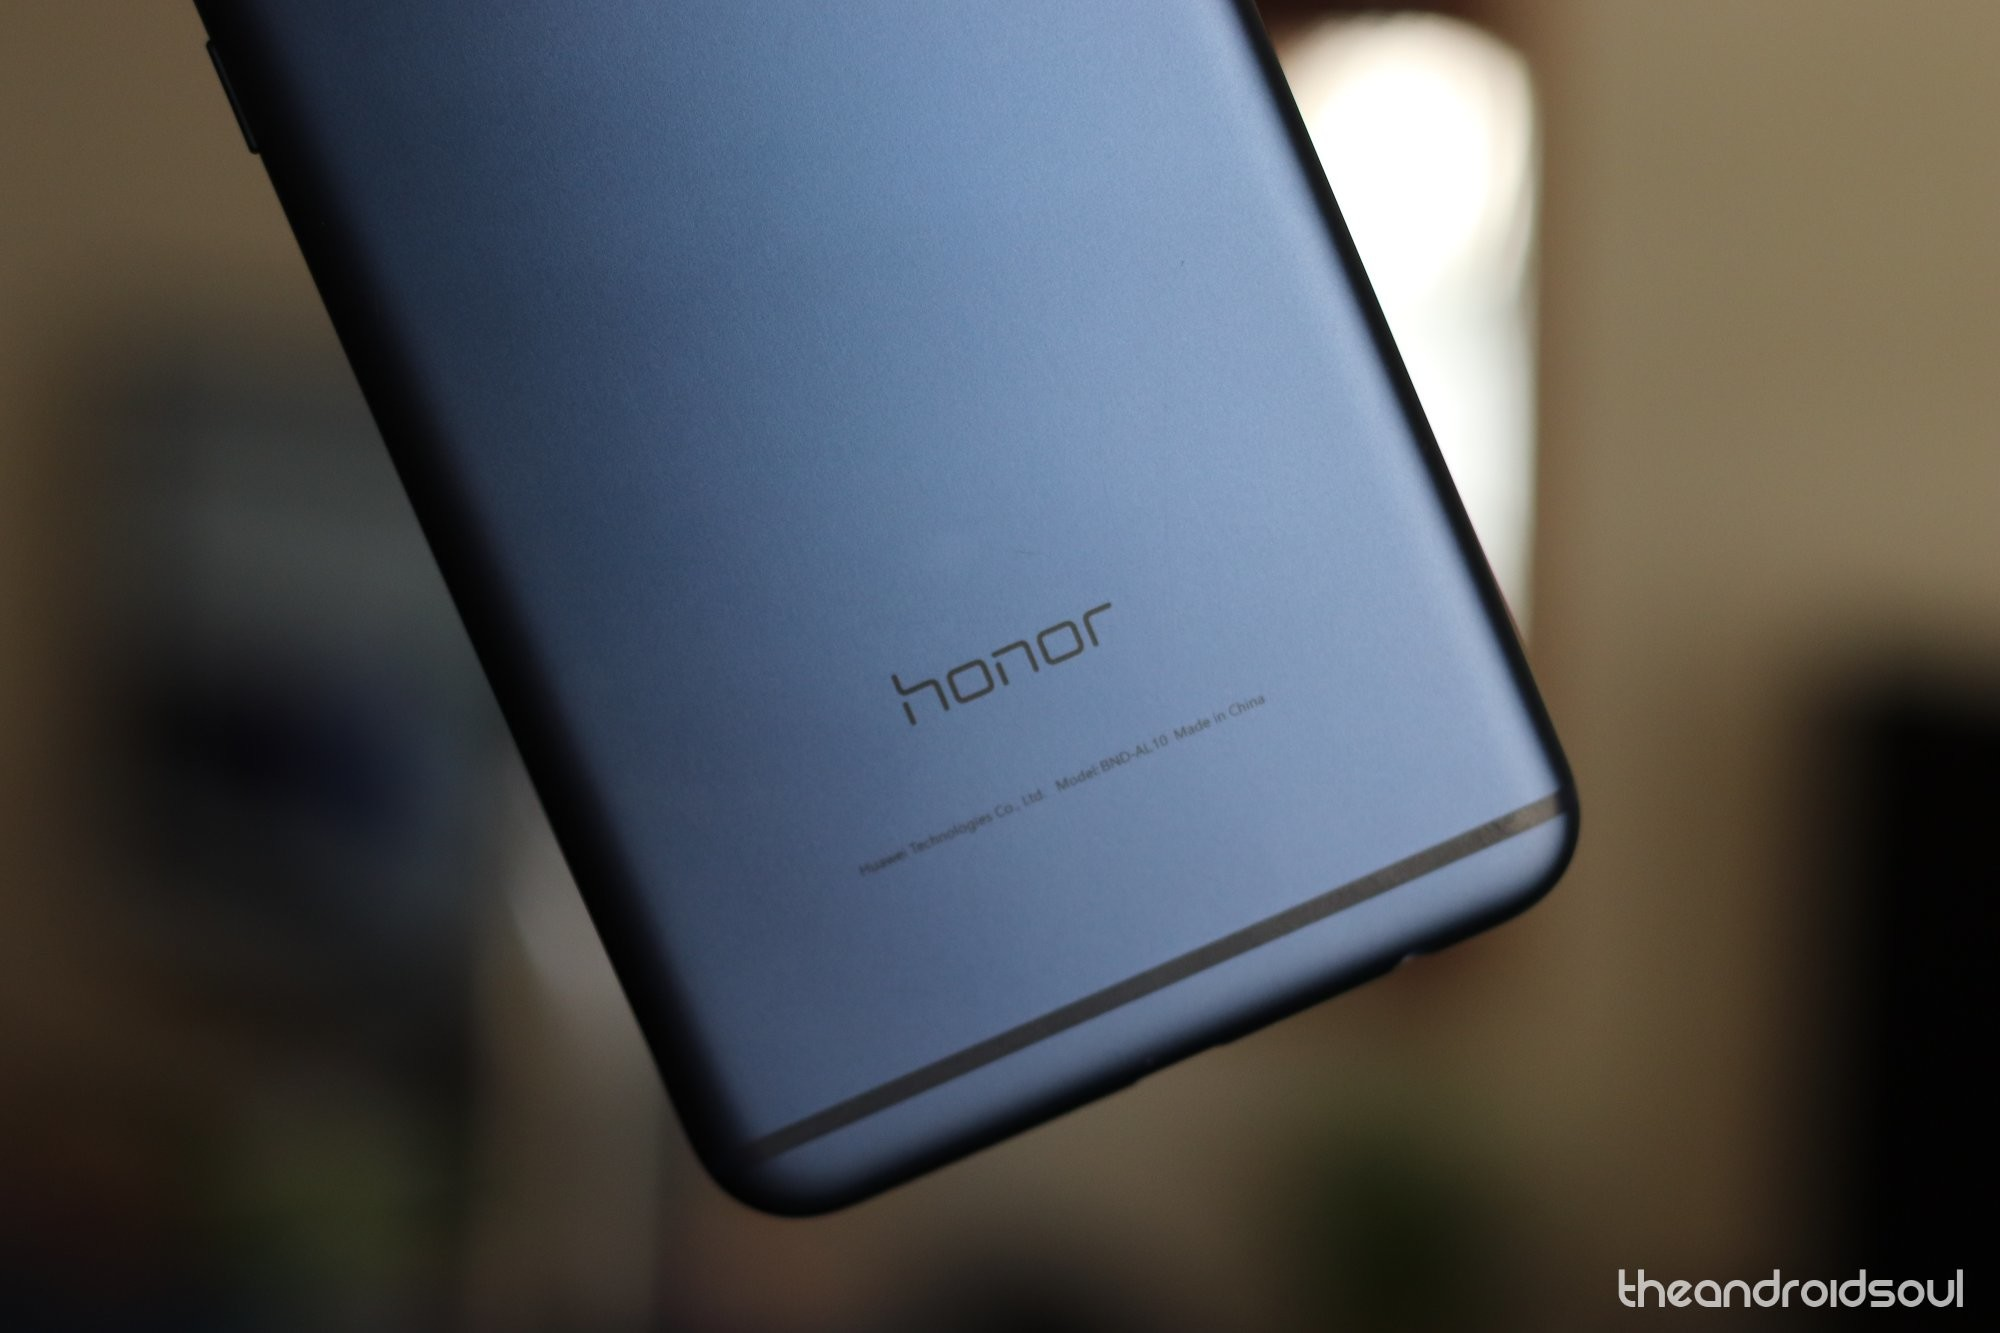 Honor 7X gets the GPU Turbo feature in latest update B360